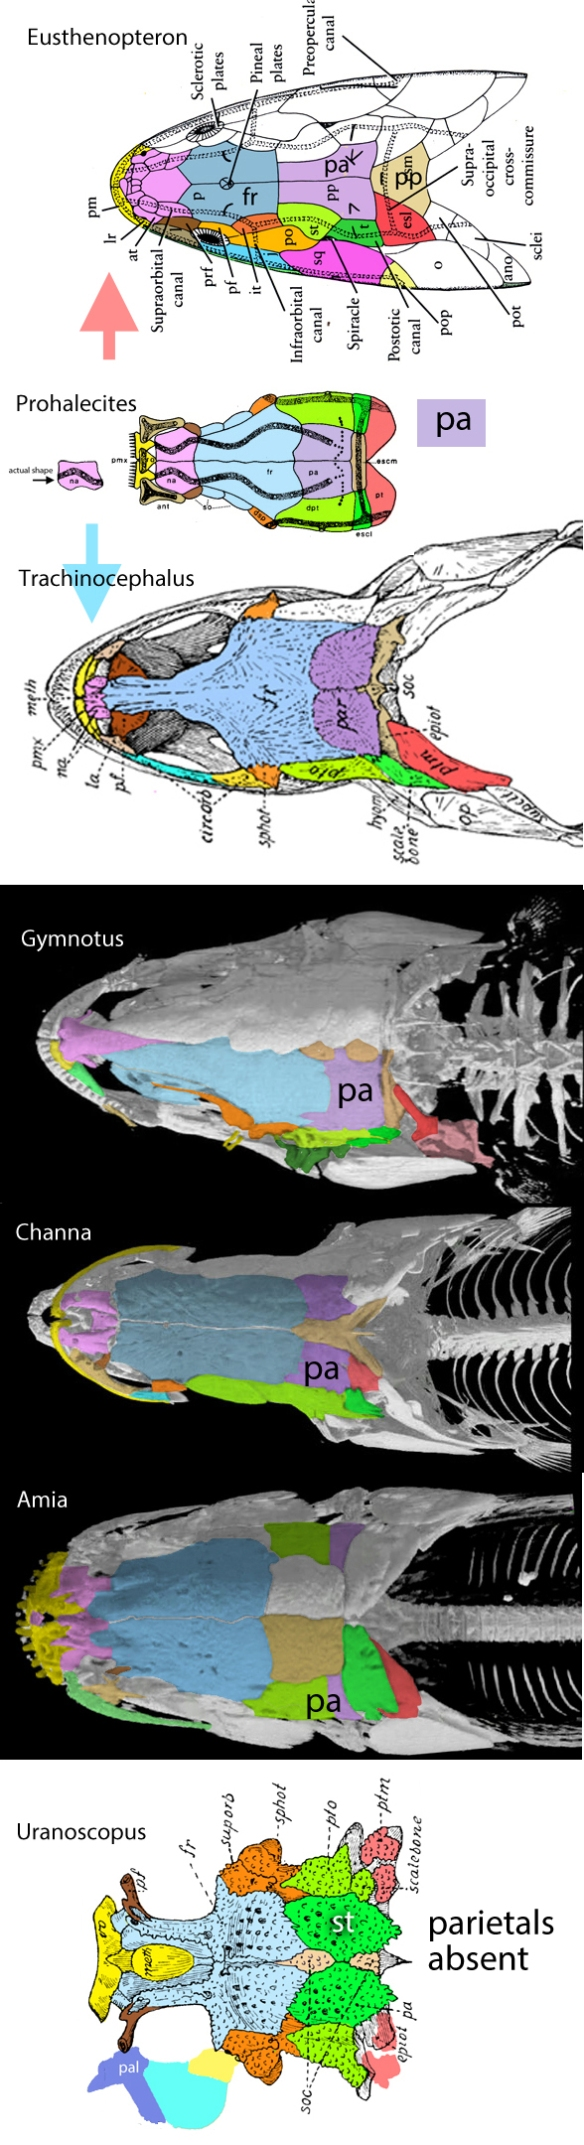 Figure 1. Fish skull roofs colored with tetrapod homologs. The parietal is of interest here as it splits in the wake of the post parietal, which forms a parasagittal crest in many taxa. The parietal disappears in some taxa.